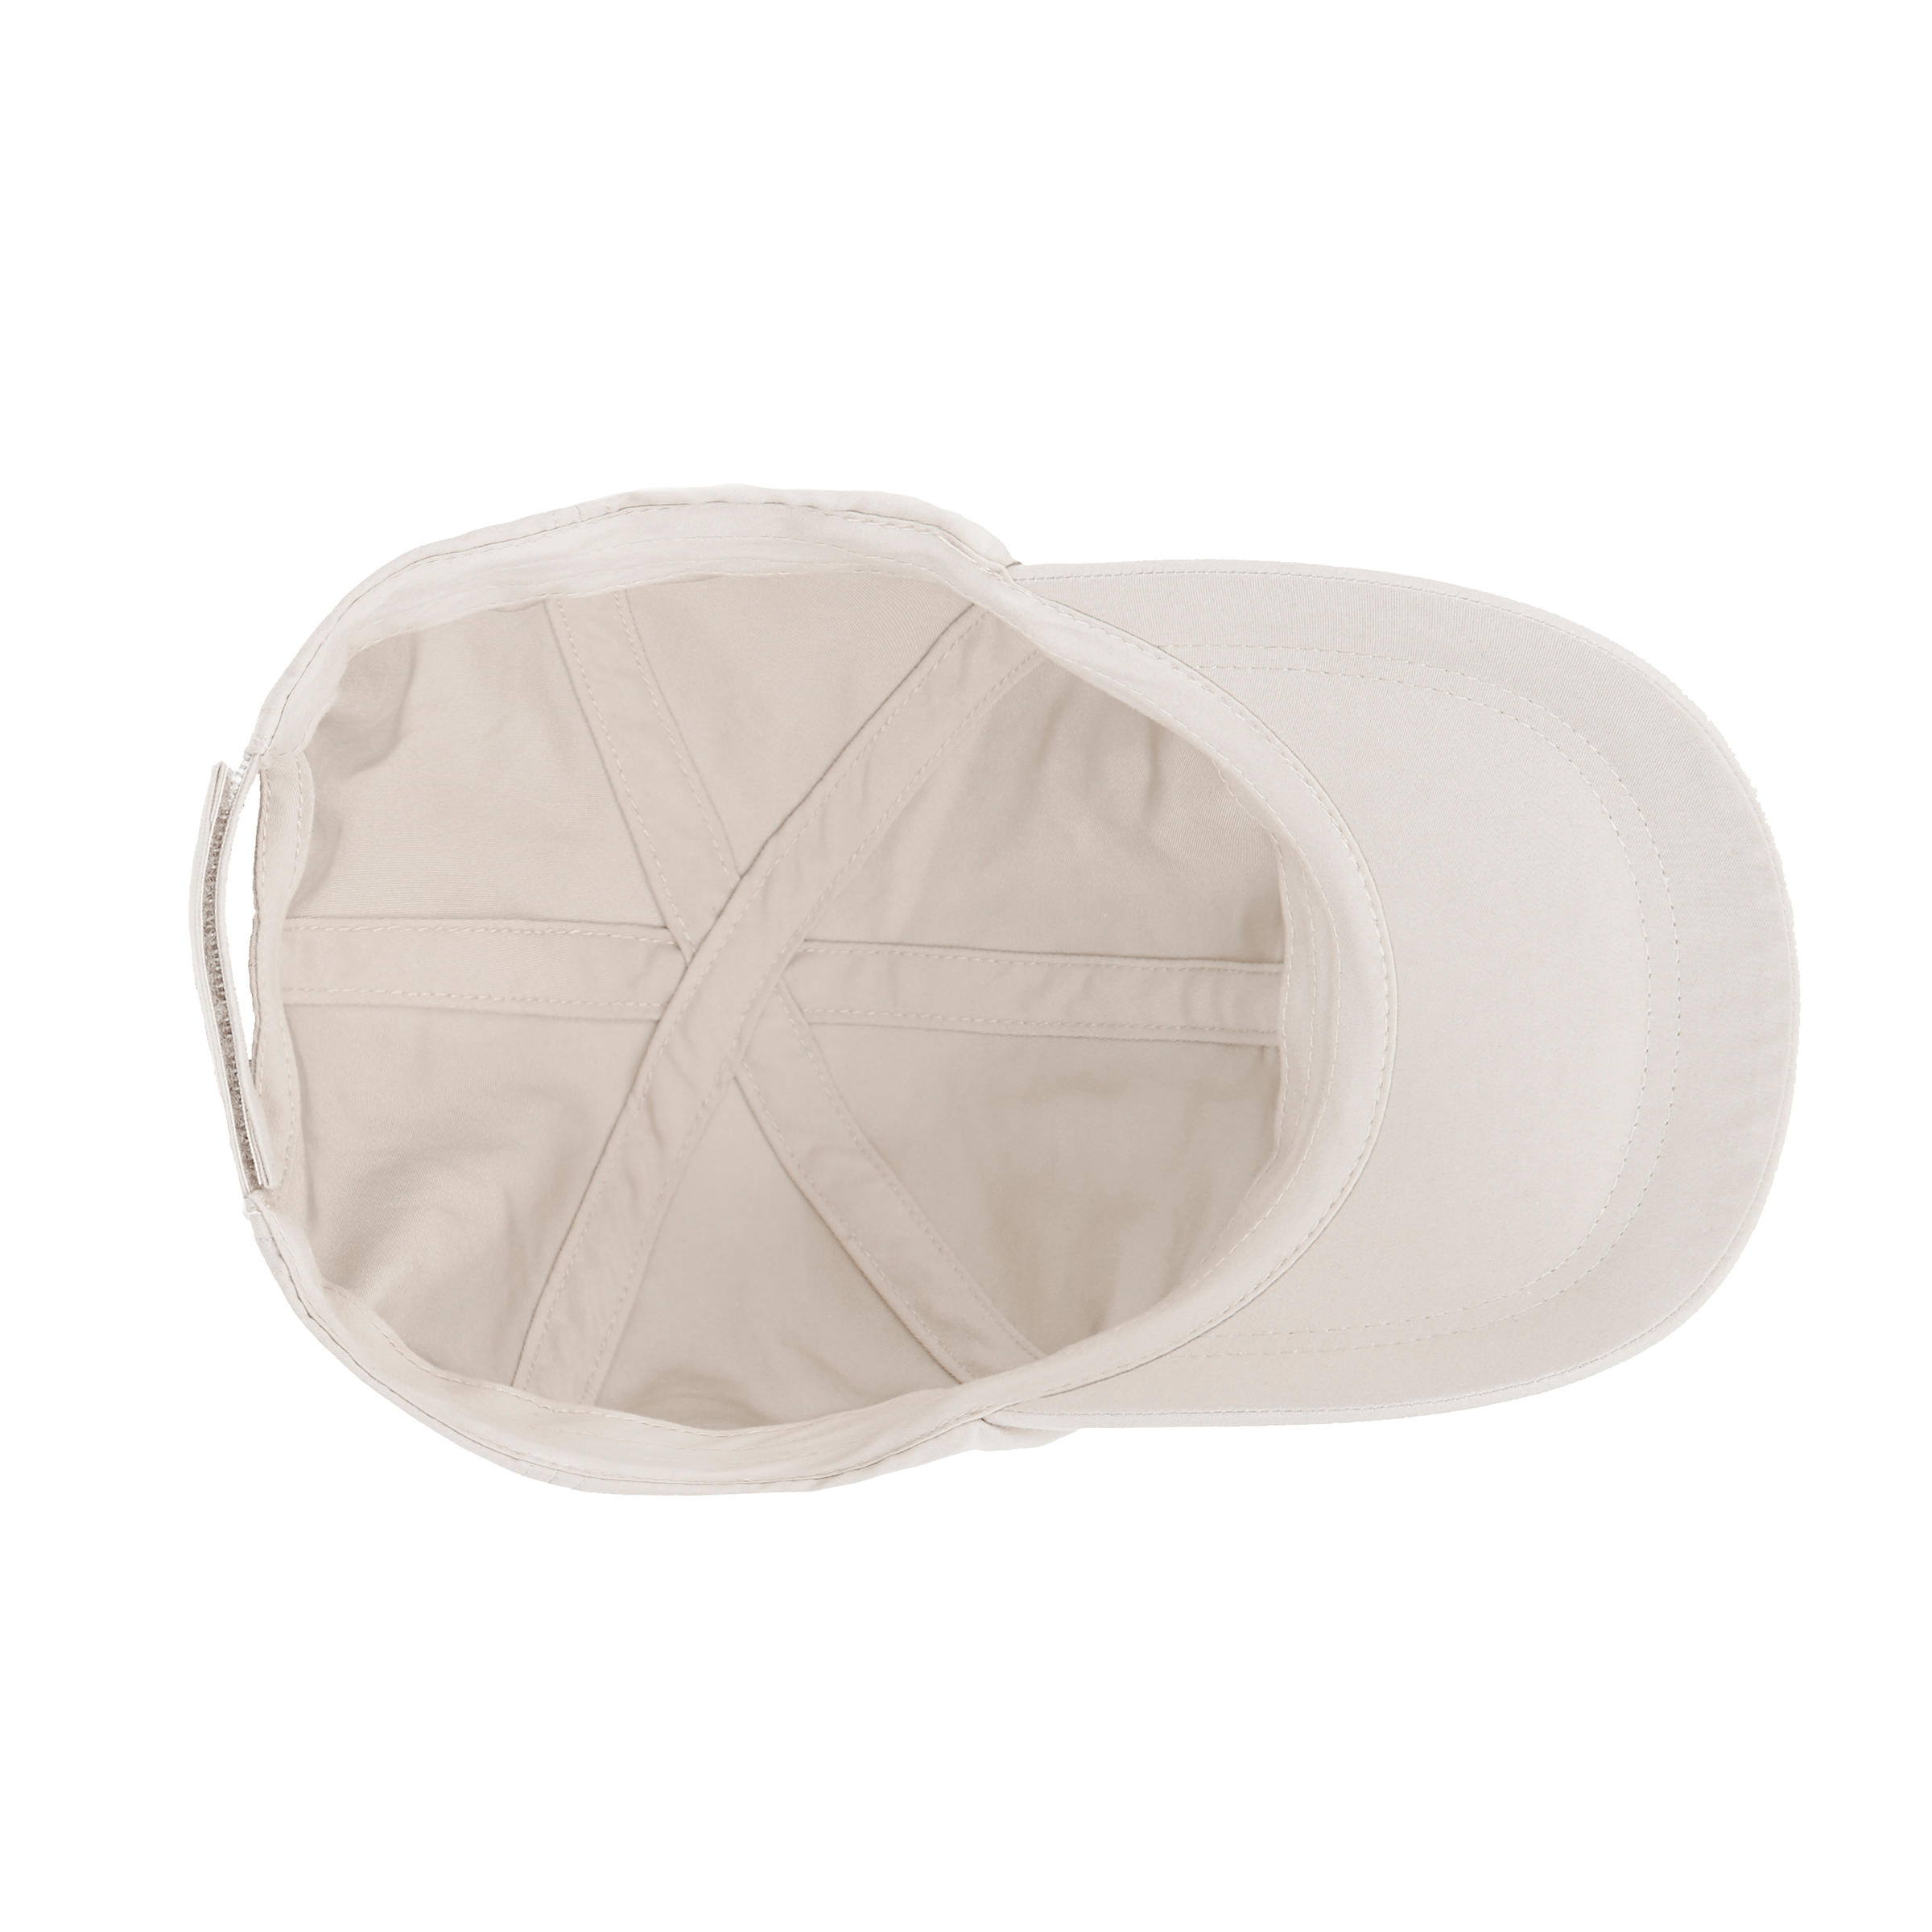 Sporting Goods Waterproof Cycling Cap Good Companions For Children As Well As Adults